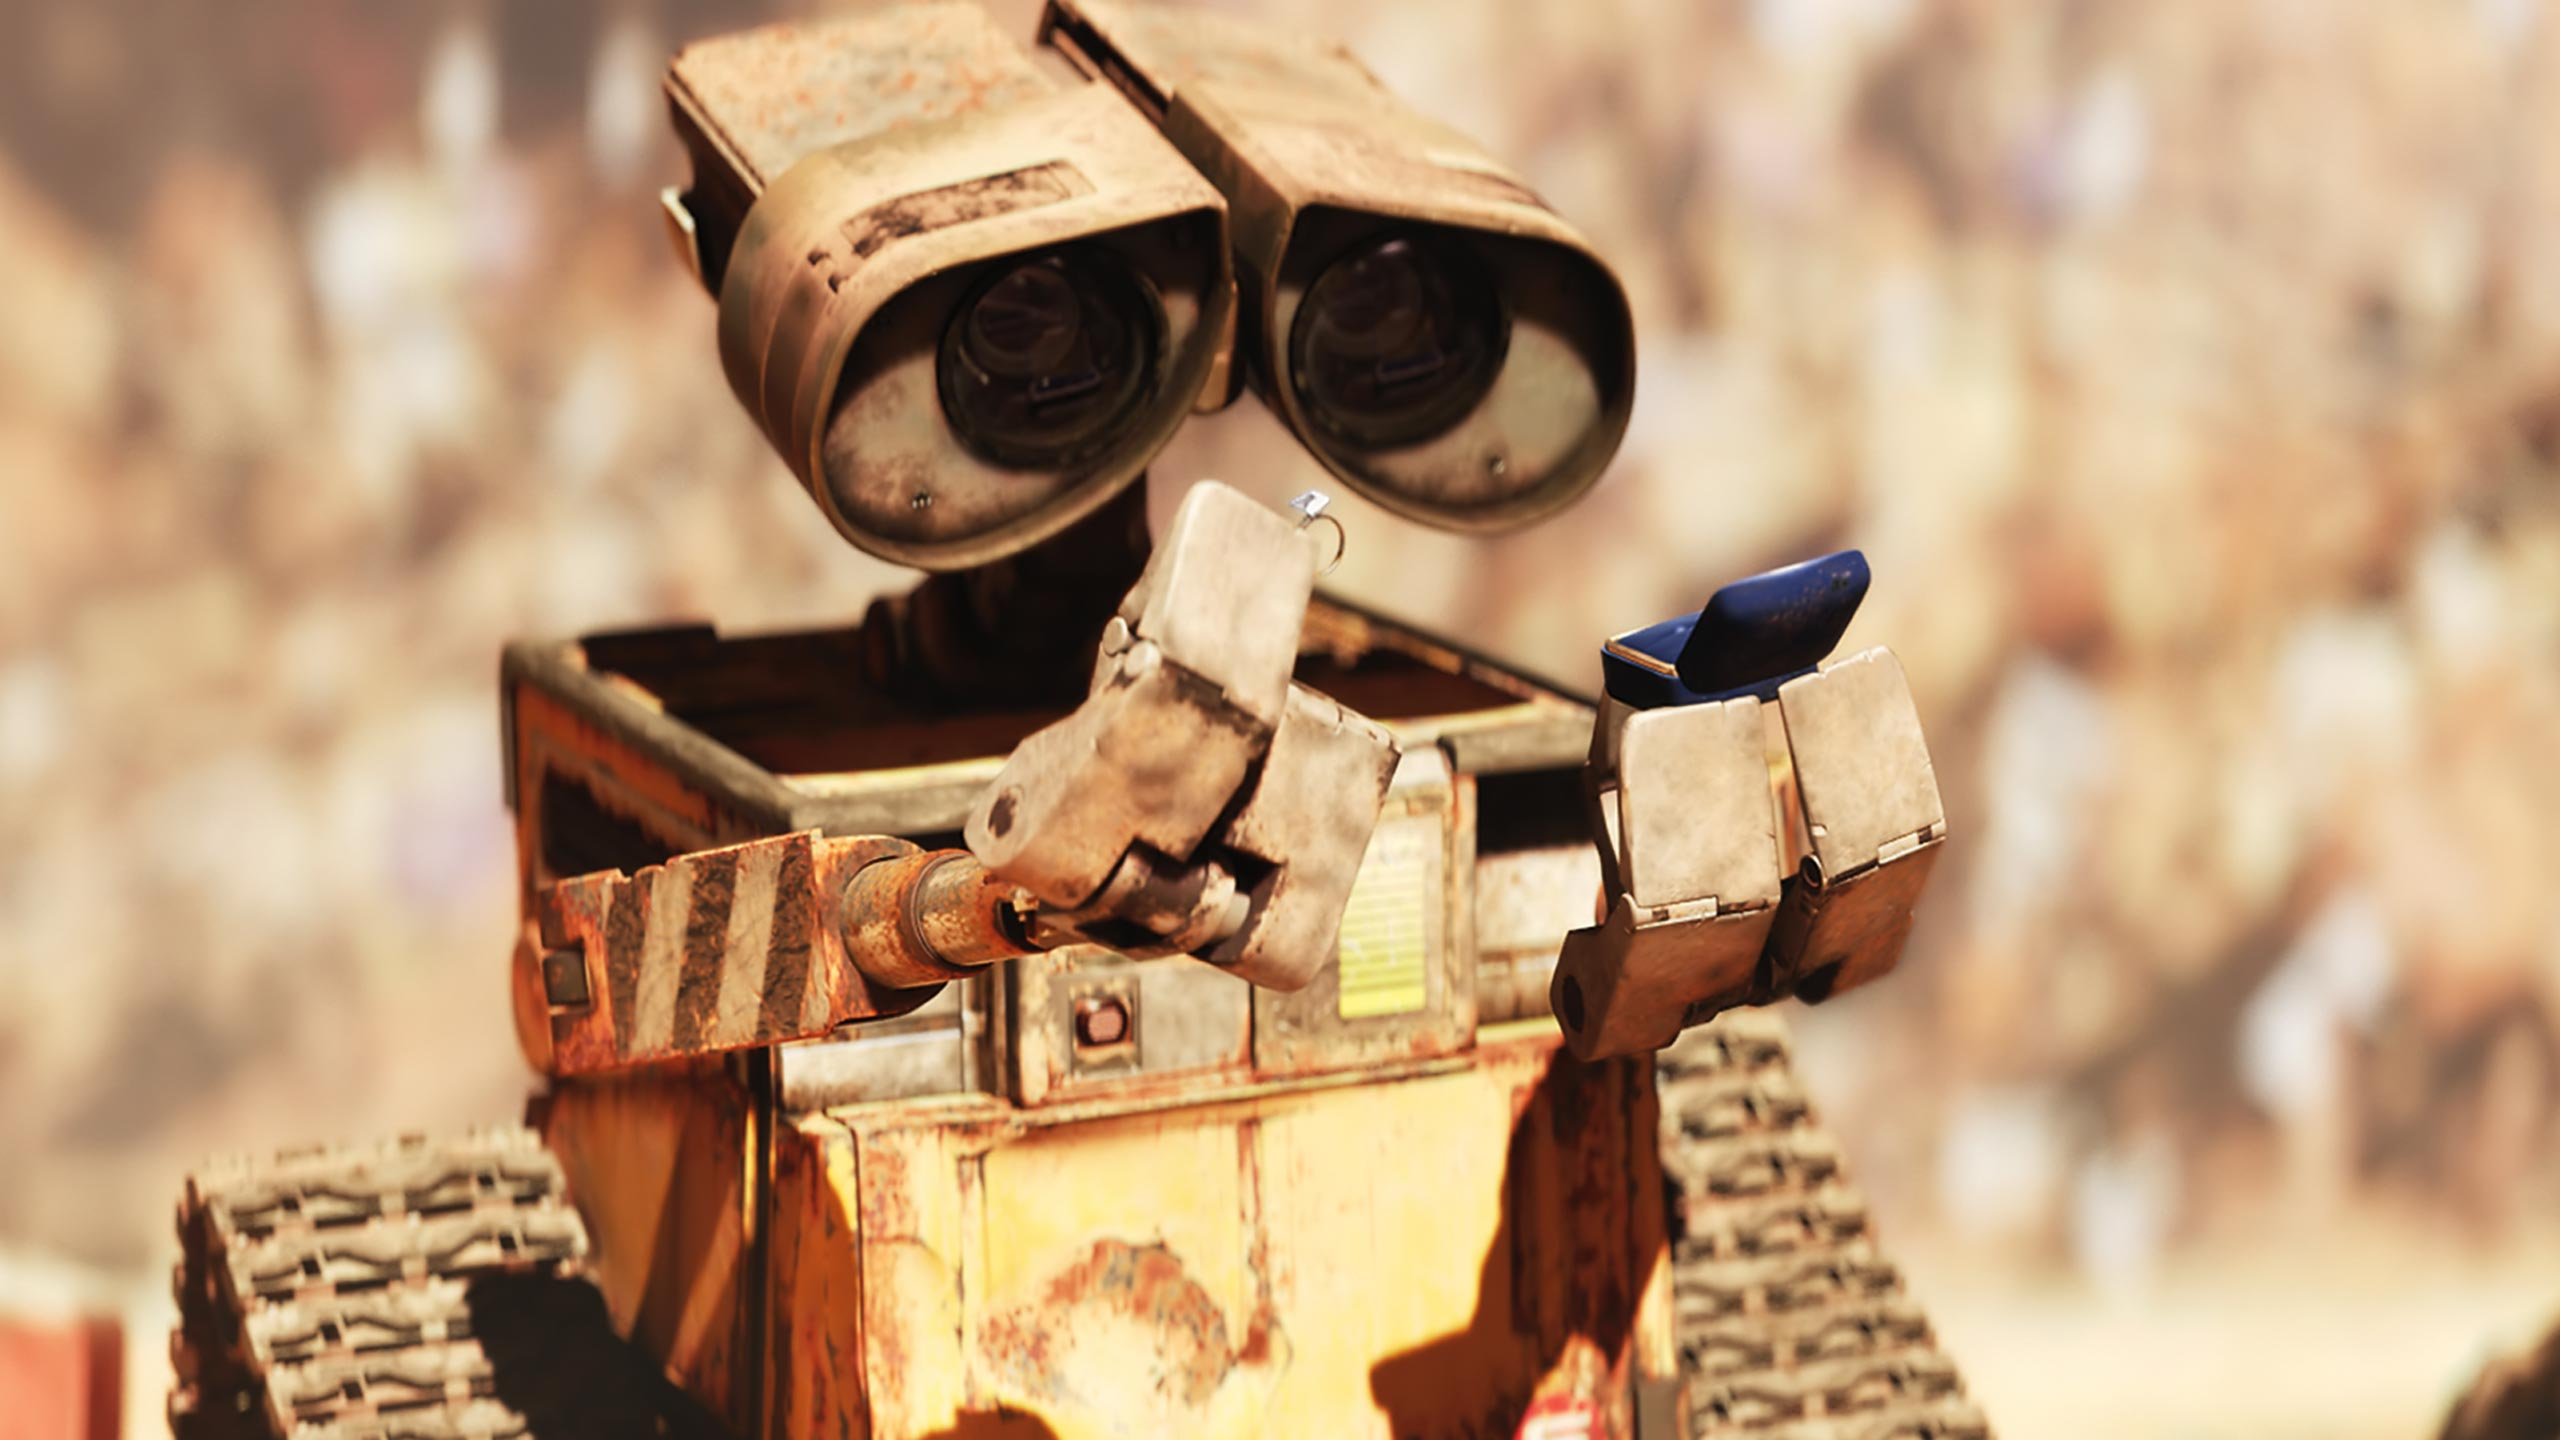 wall-e hd wallpapers for desktop download